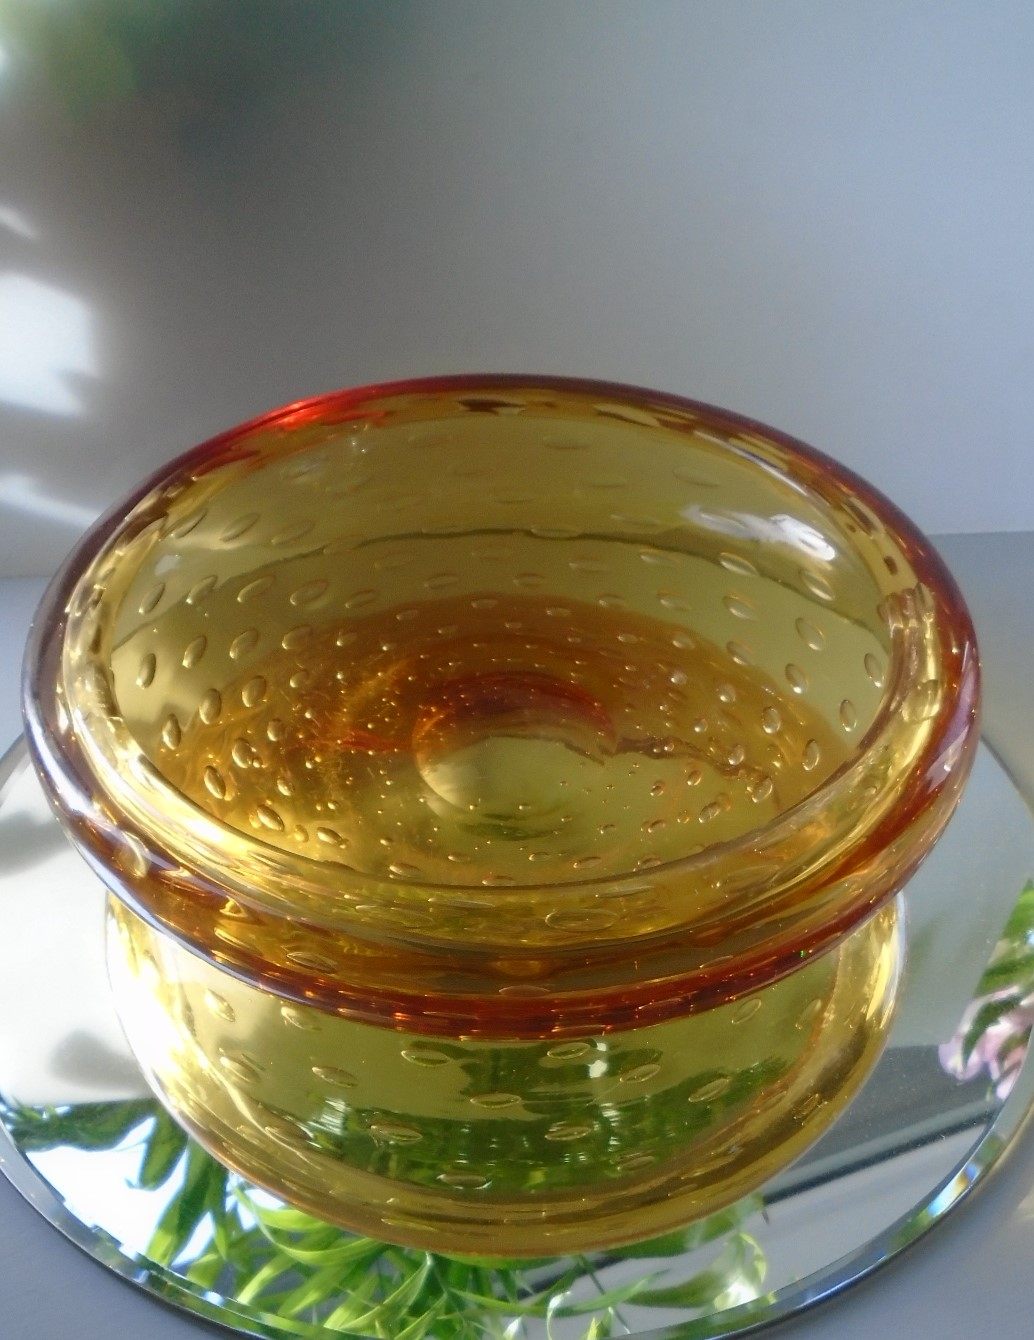 Amazingly heavy Vintage 50s William Wilson Whitefriars Glass Golden Amber Controlled Bubble Bowl Pattern 9099. It measures 8ins in diameter